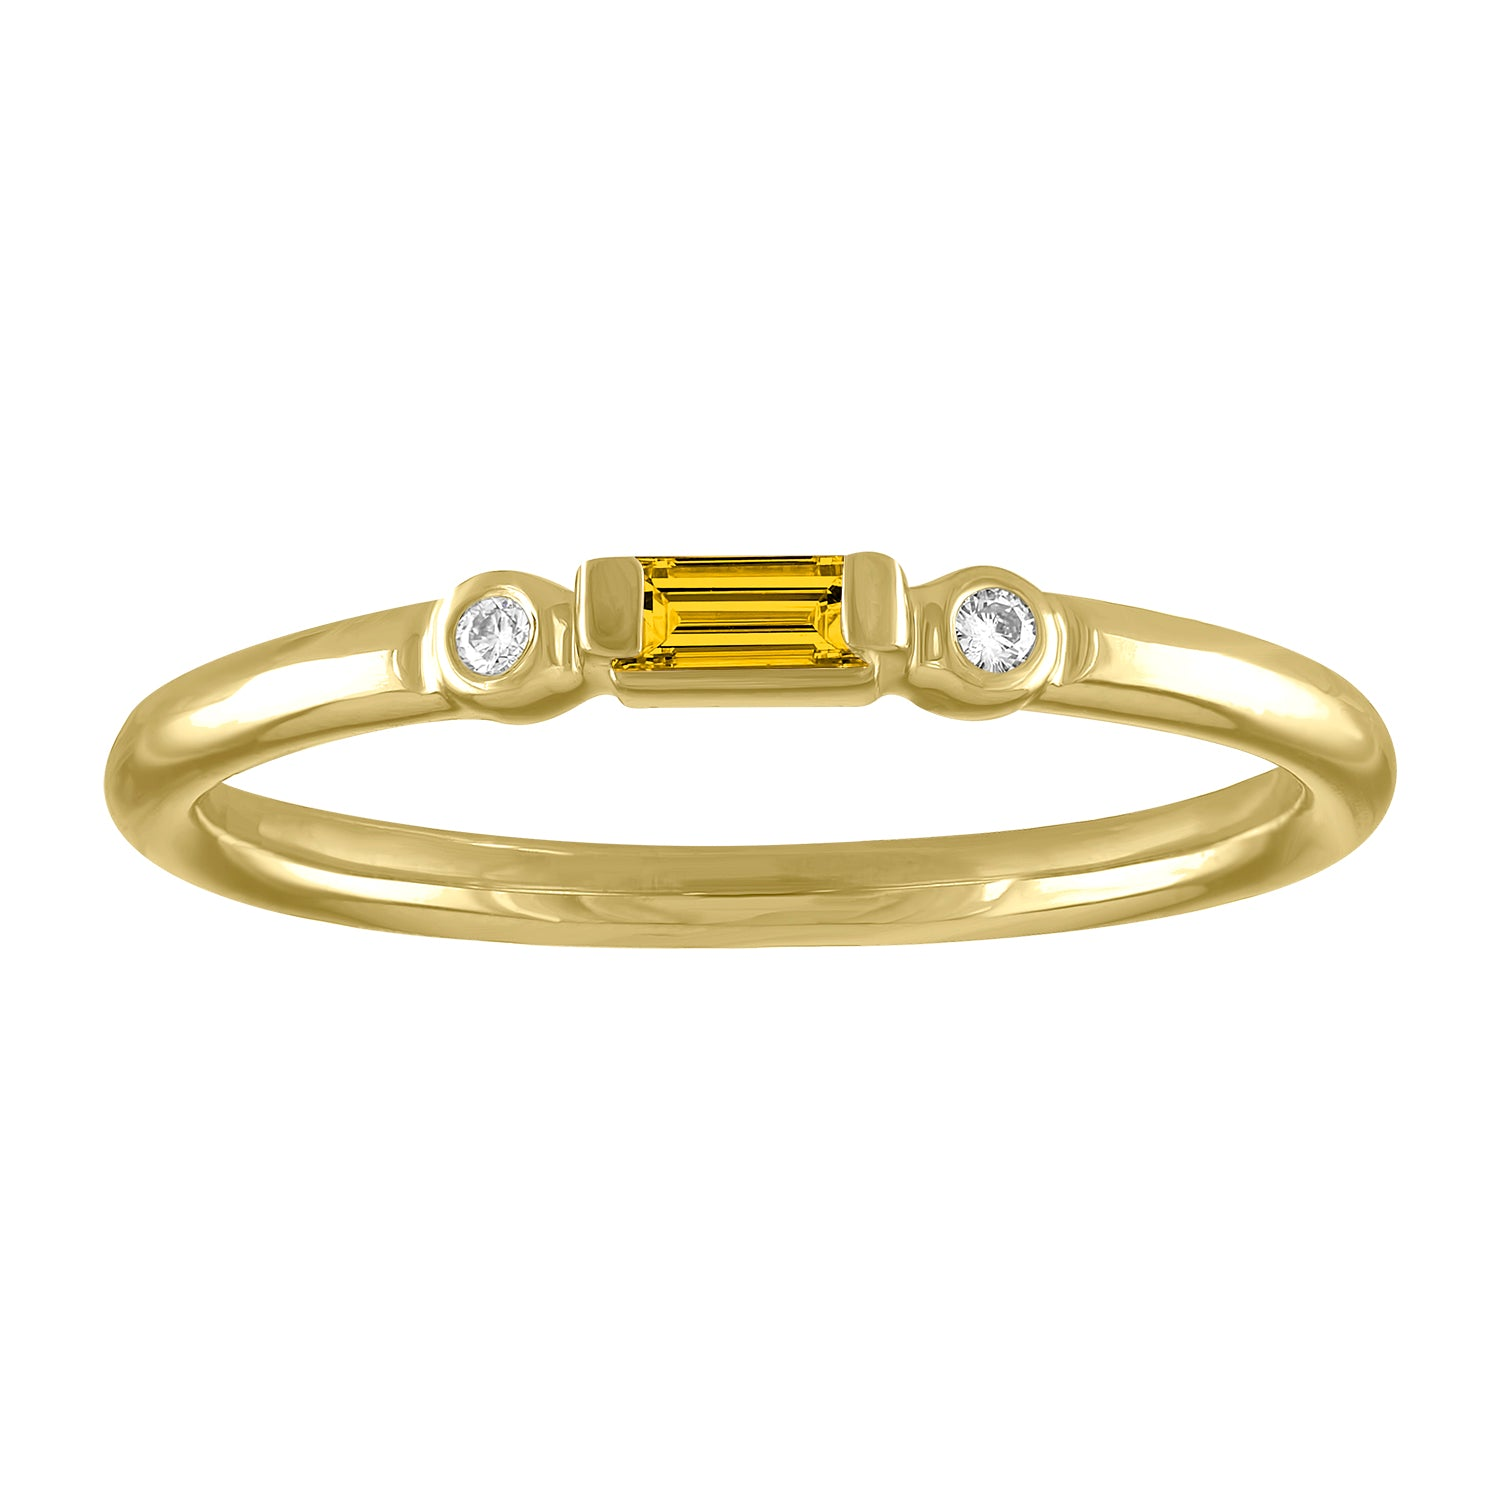 Olive ring with citrine baguette and two round diamonds